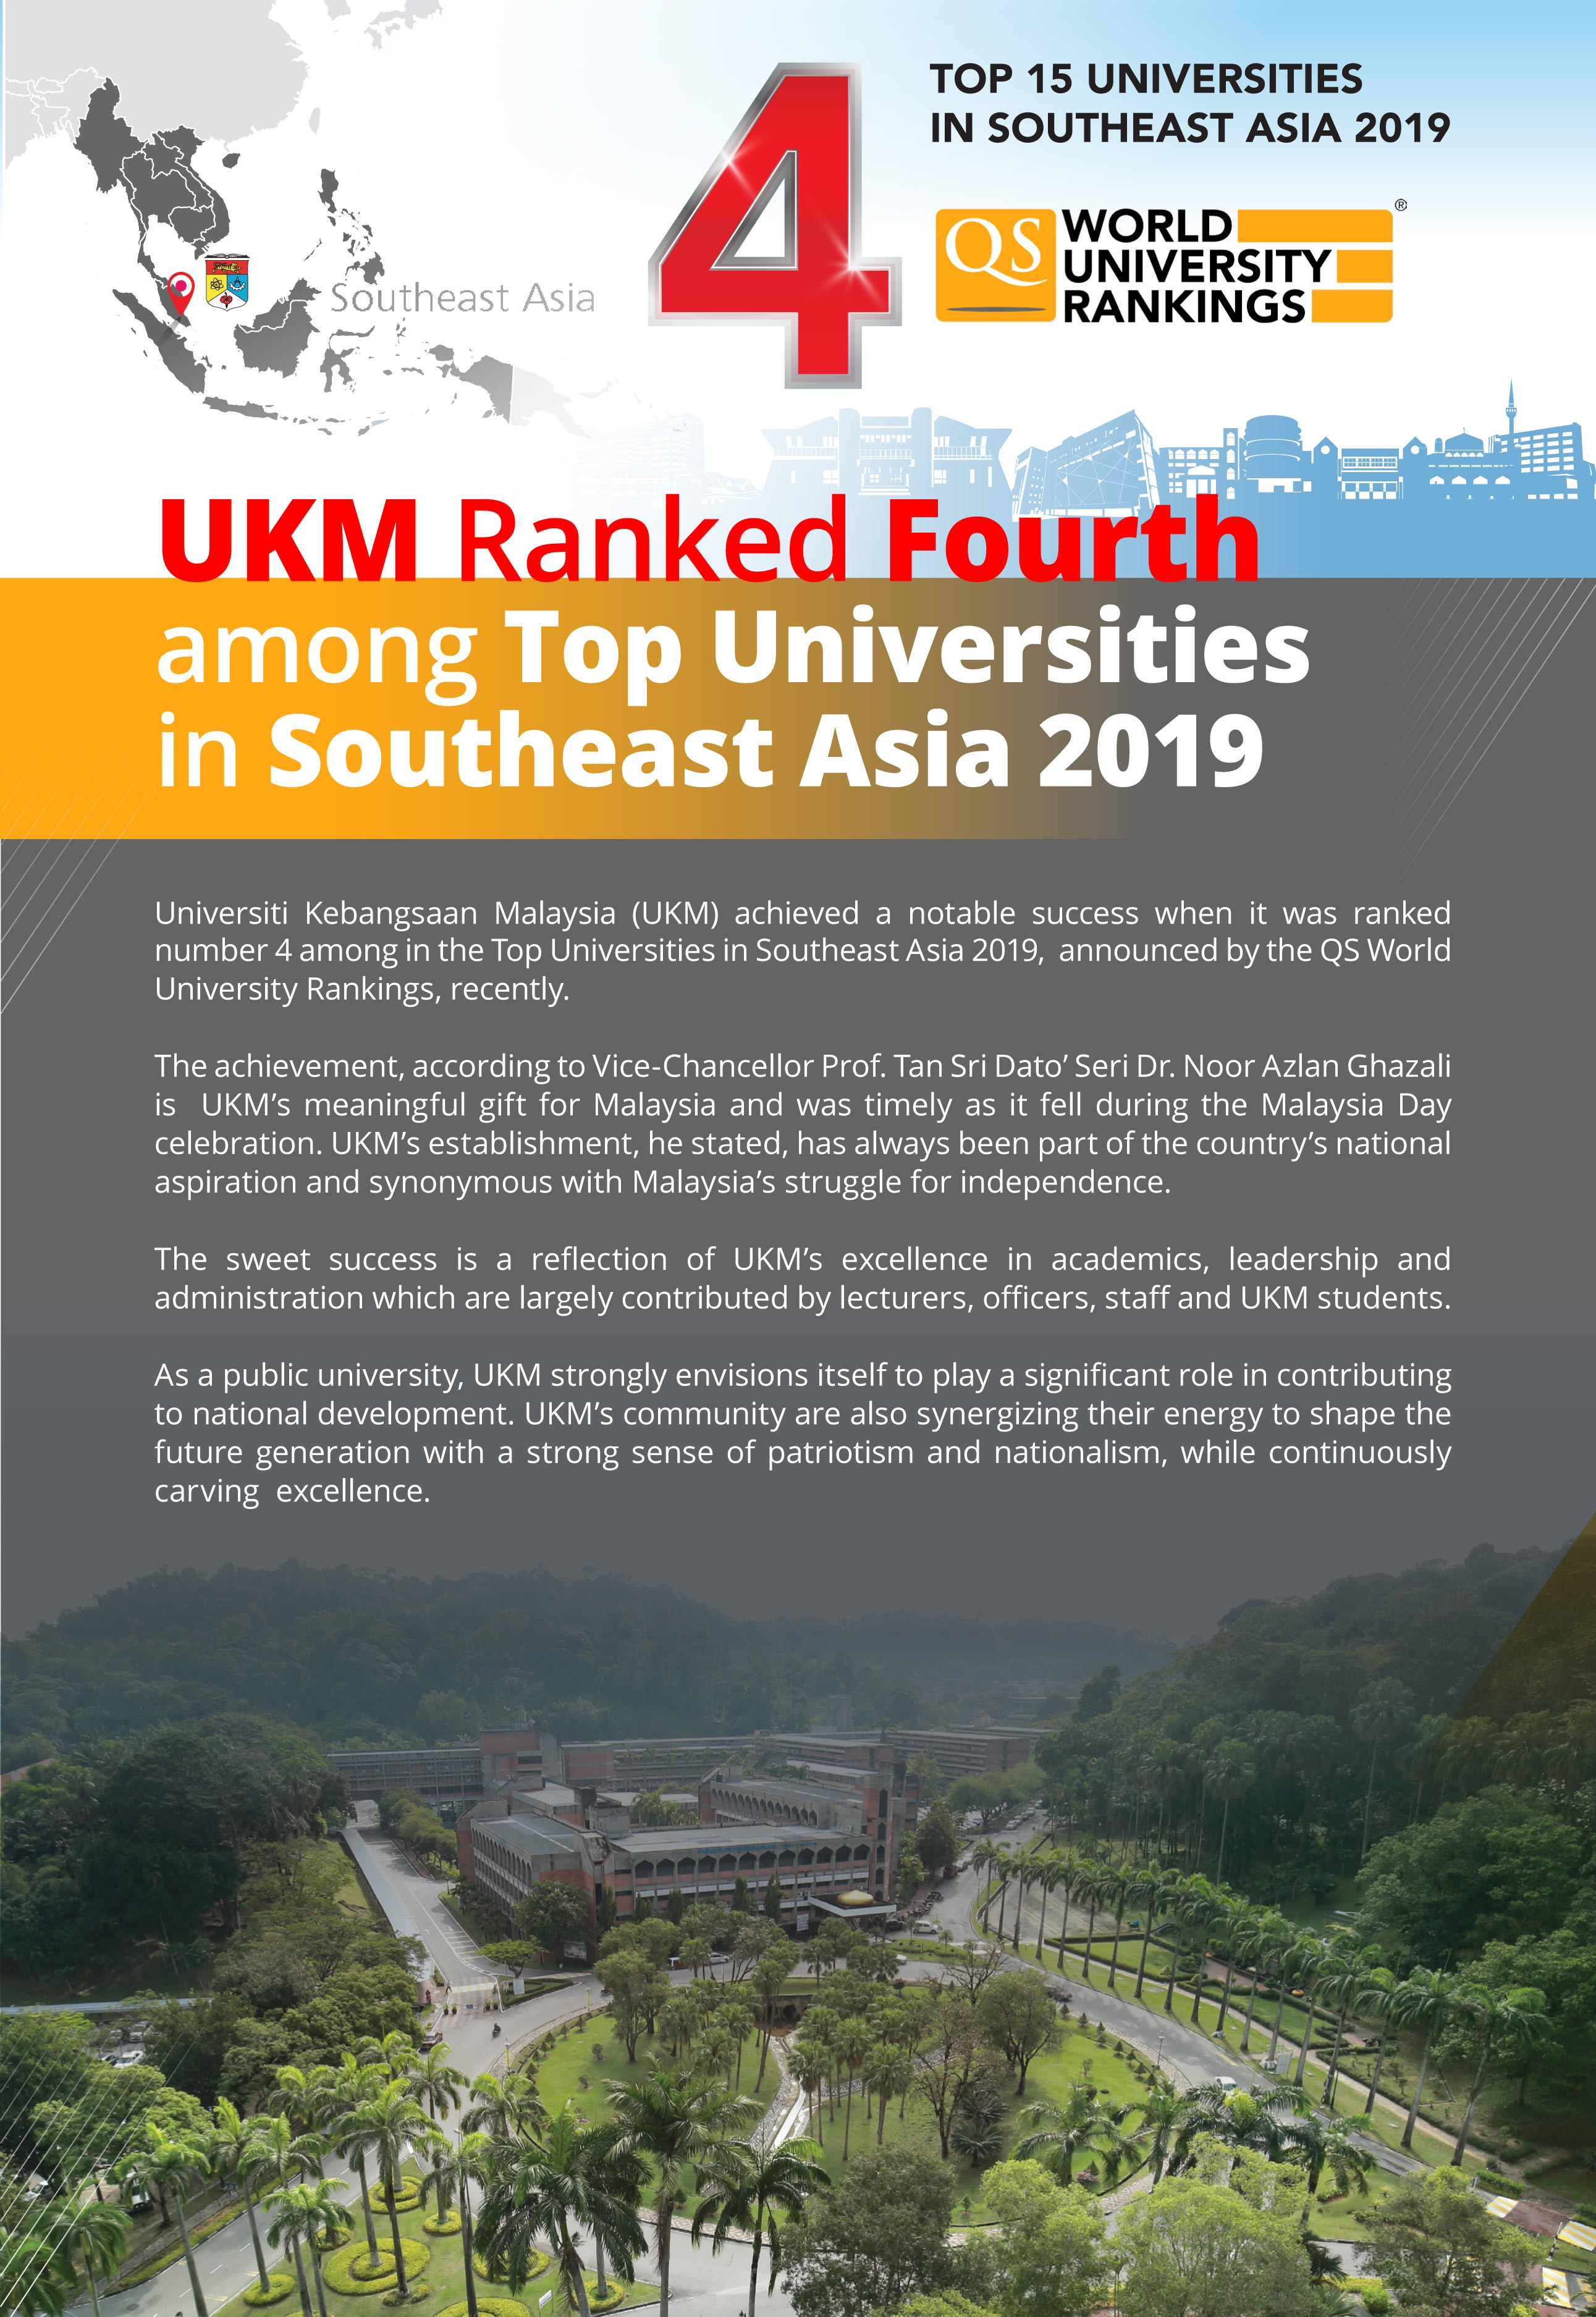 UKM Ranked Fourth among Top Universities in Southeast Asia 2019